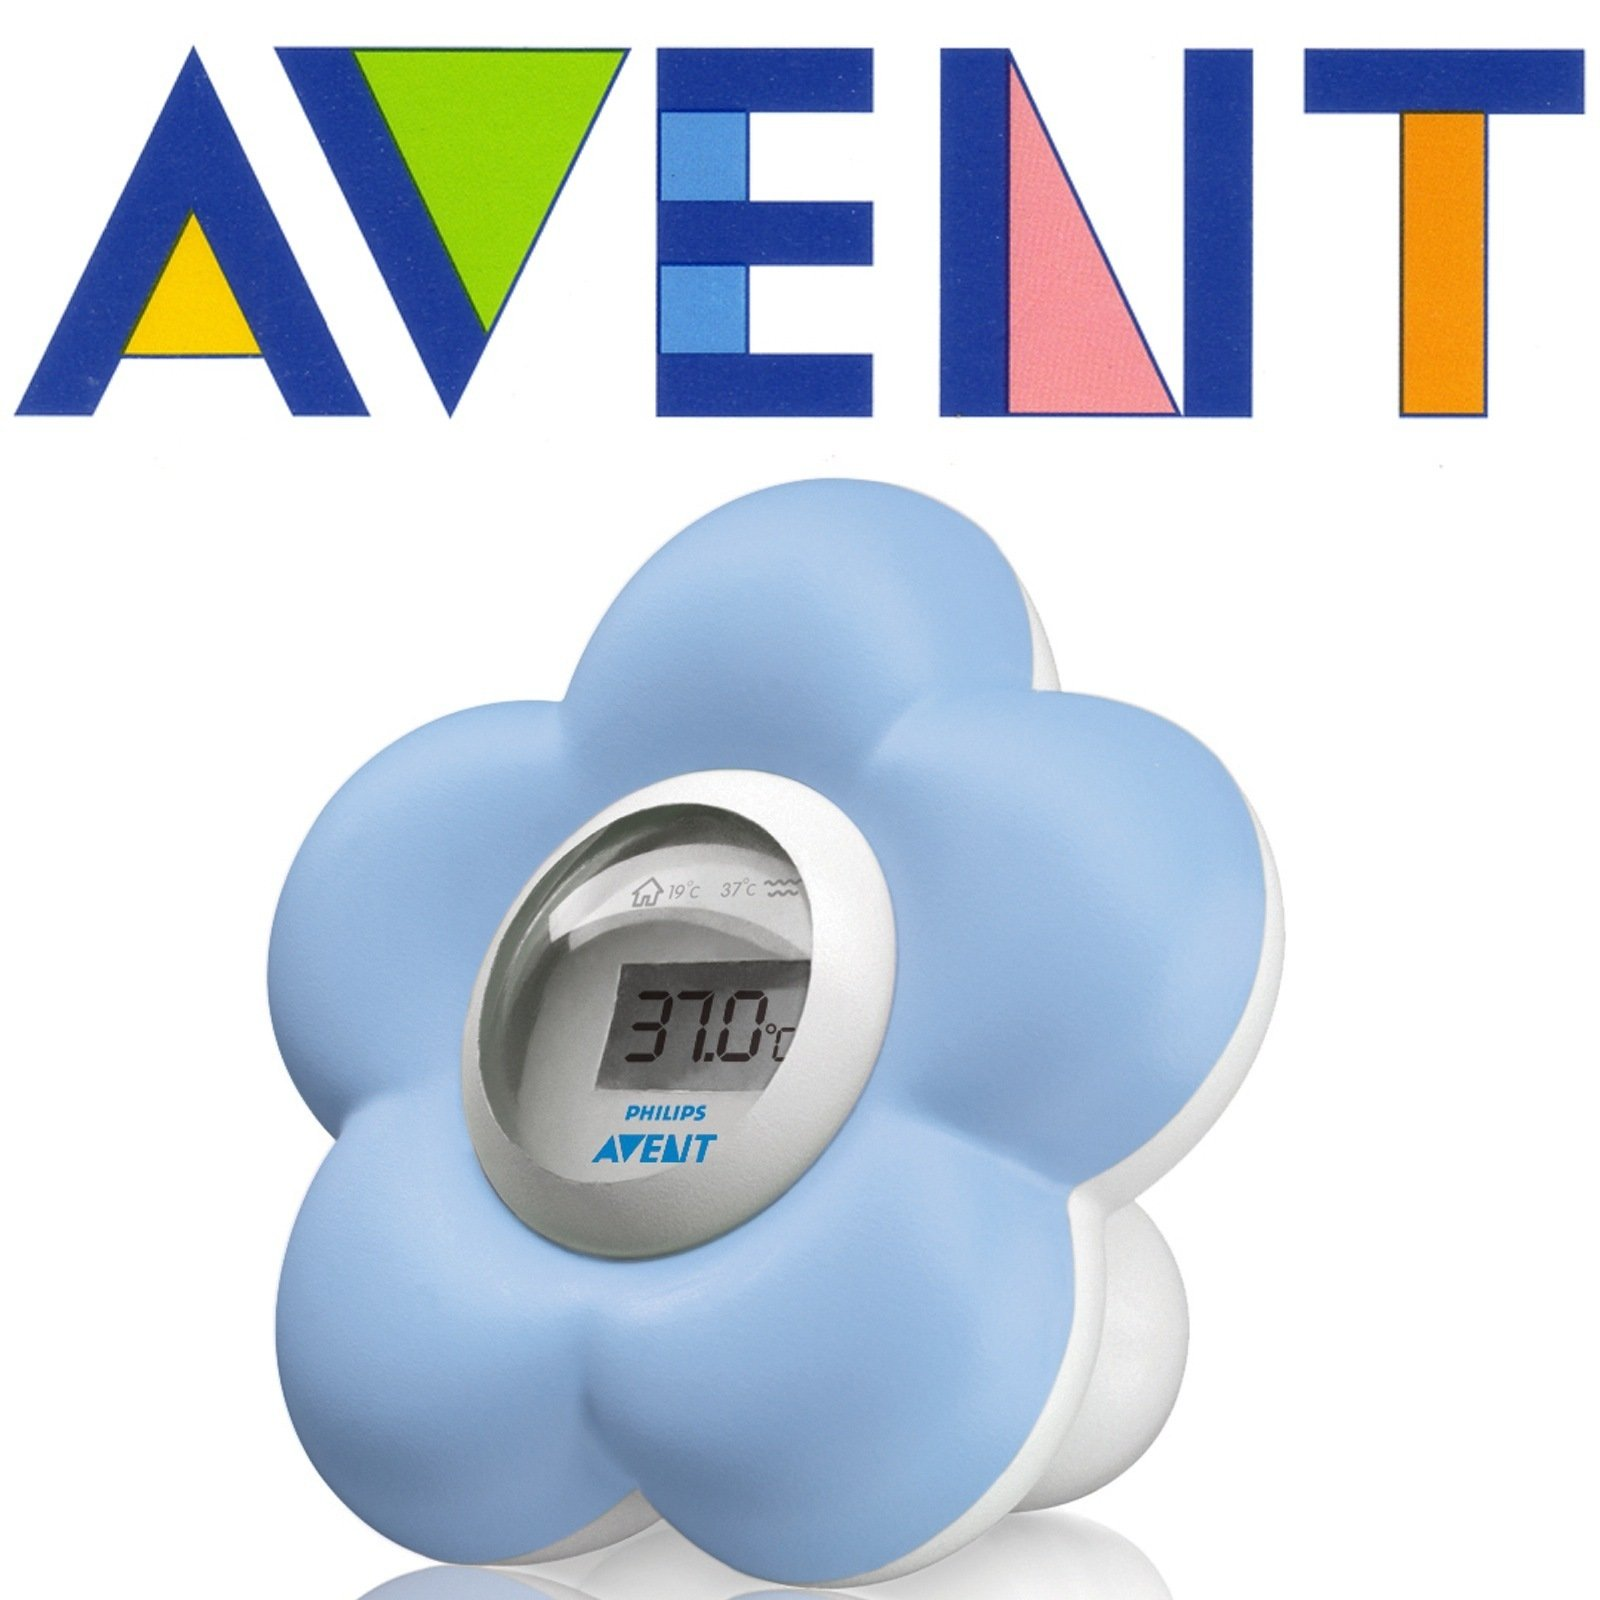 Philips Avent Digital Baby Bath and Room Thermometer Scf550/20 High Quality Best Seller Fast Shipping Ship Worldwide From Heng Heng Shop by Philips AVENT